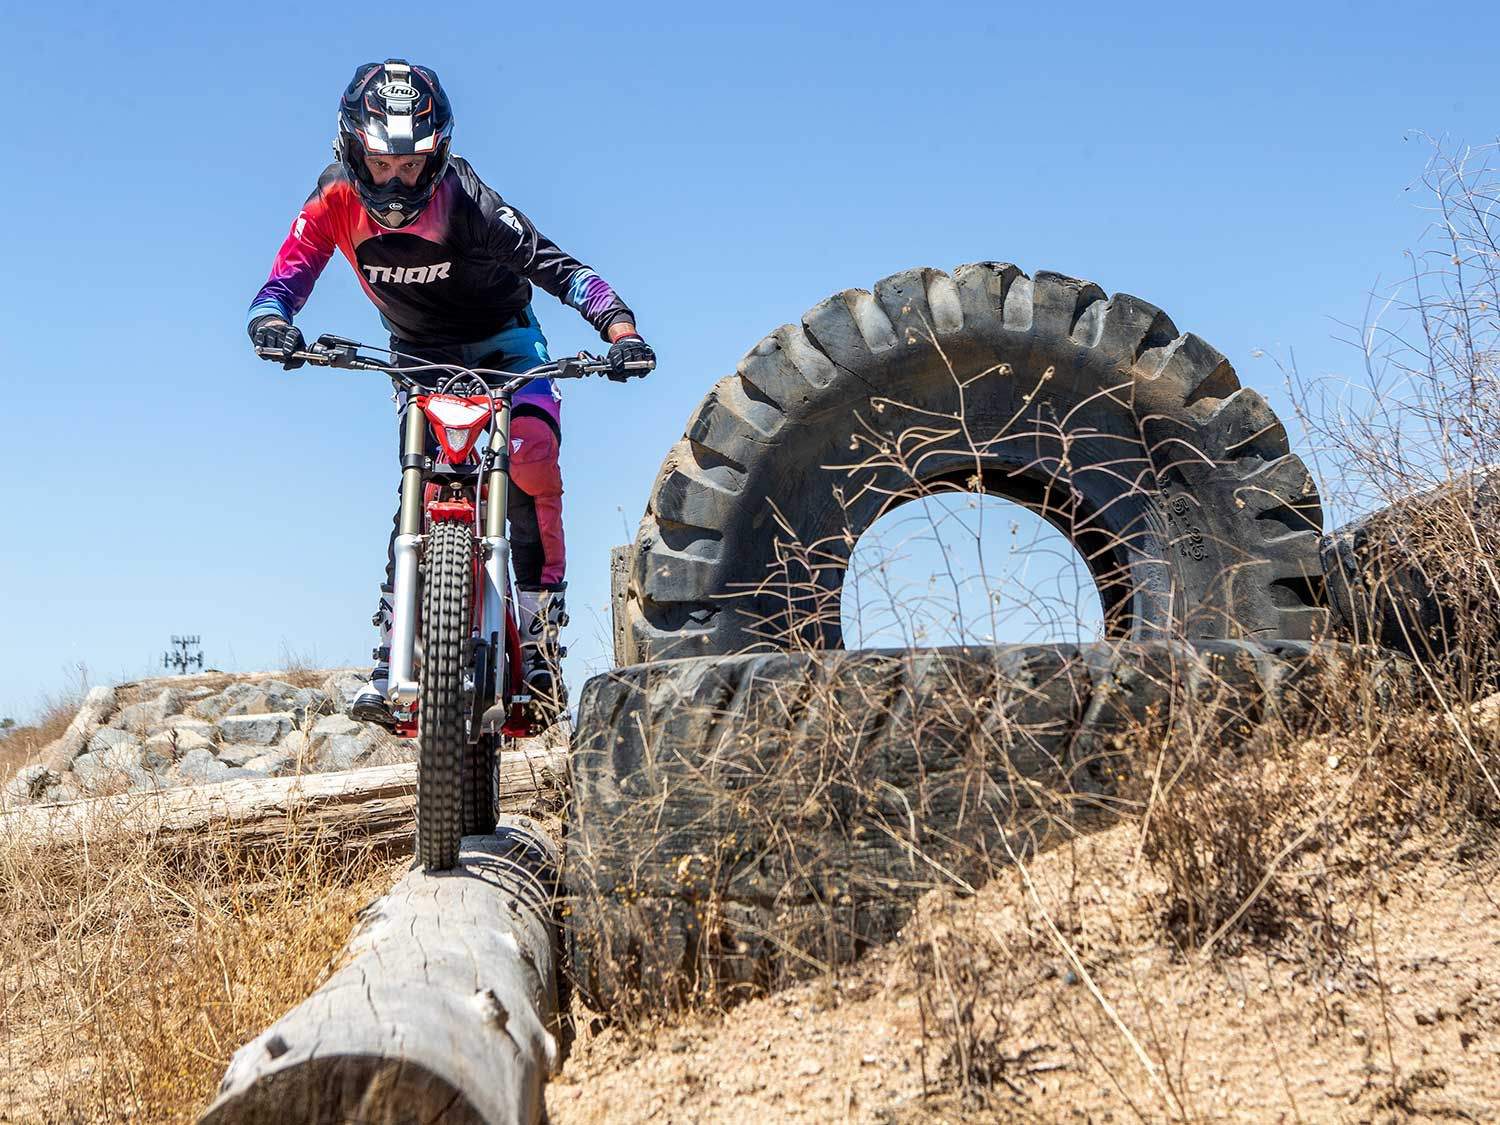 We swing a leg over the 2020 GasGas TXT Racing 250 trials bike in this review.